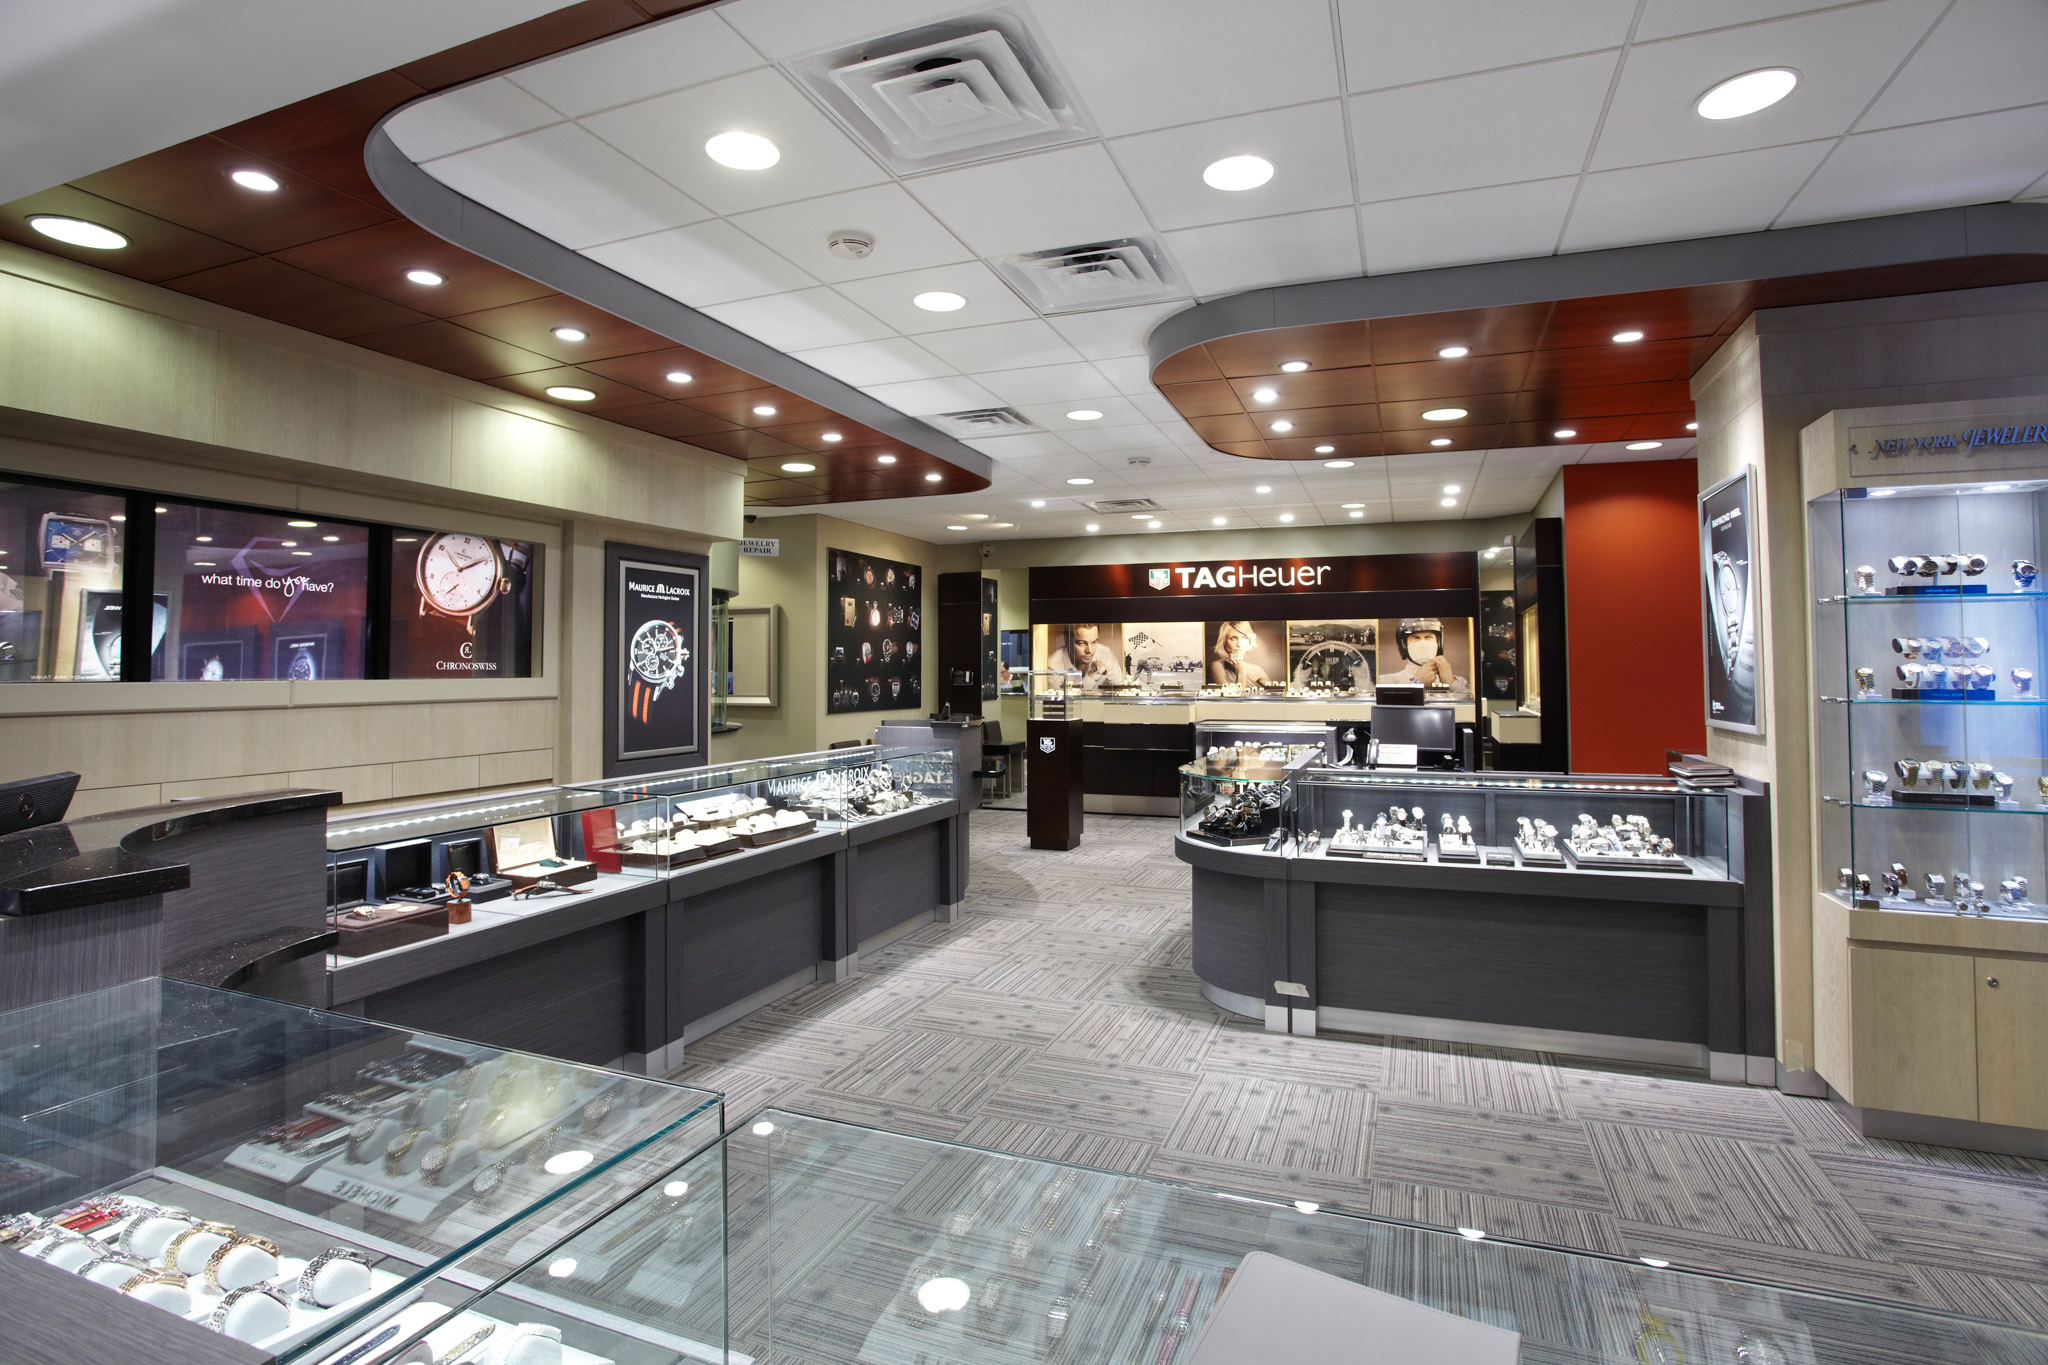 High Design Jewelry Nyc Of Jewelry Stores In Chicago For Engagement Rings And Earrings